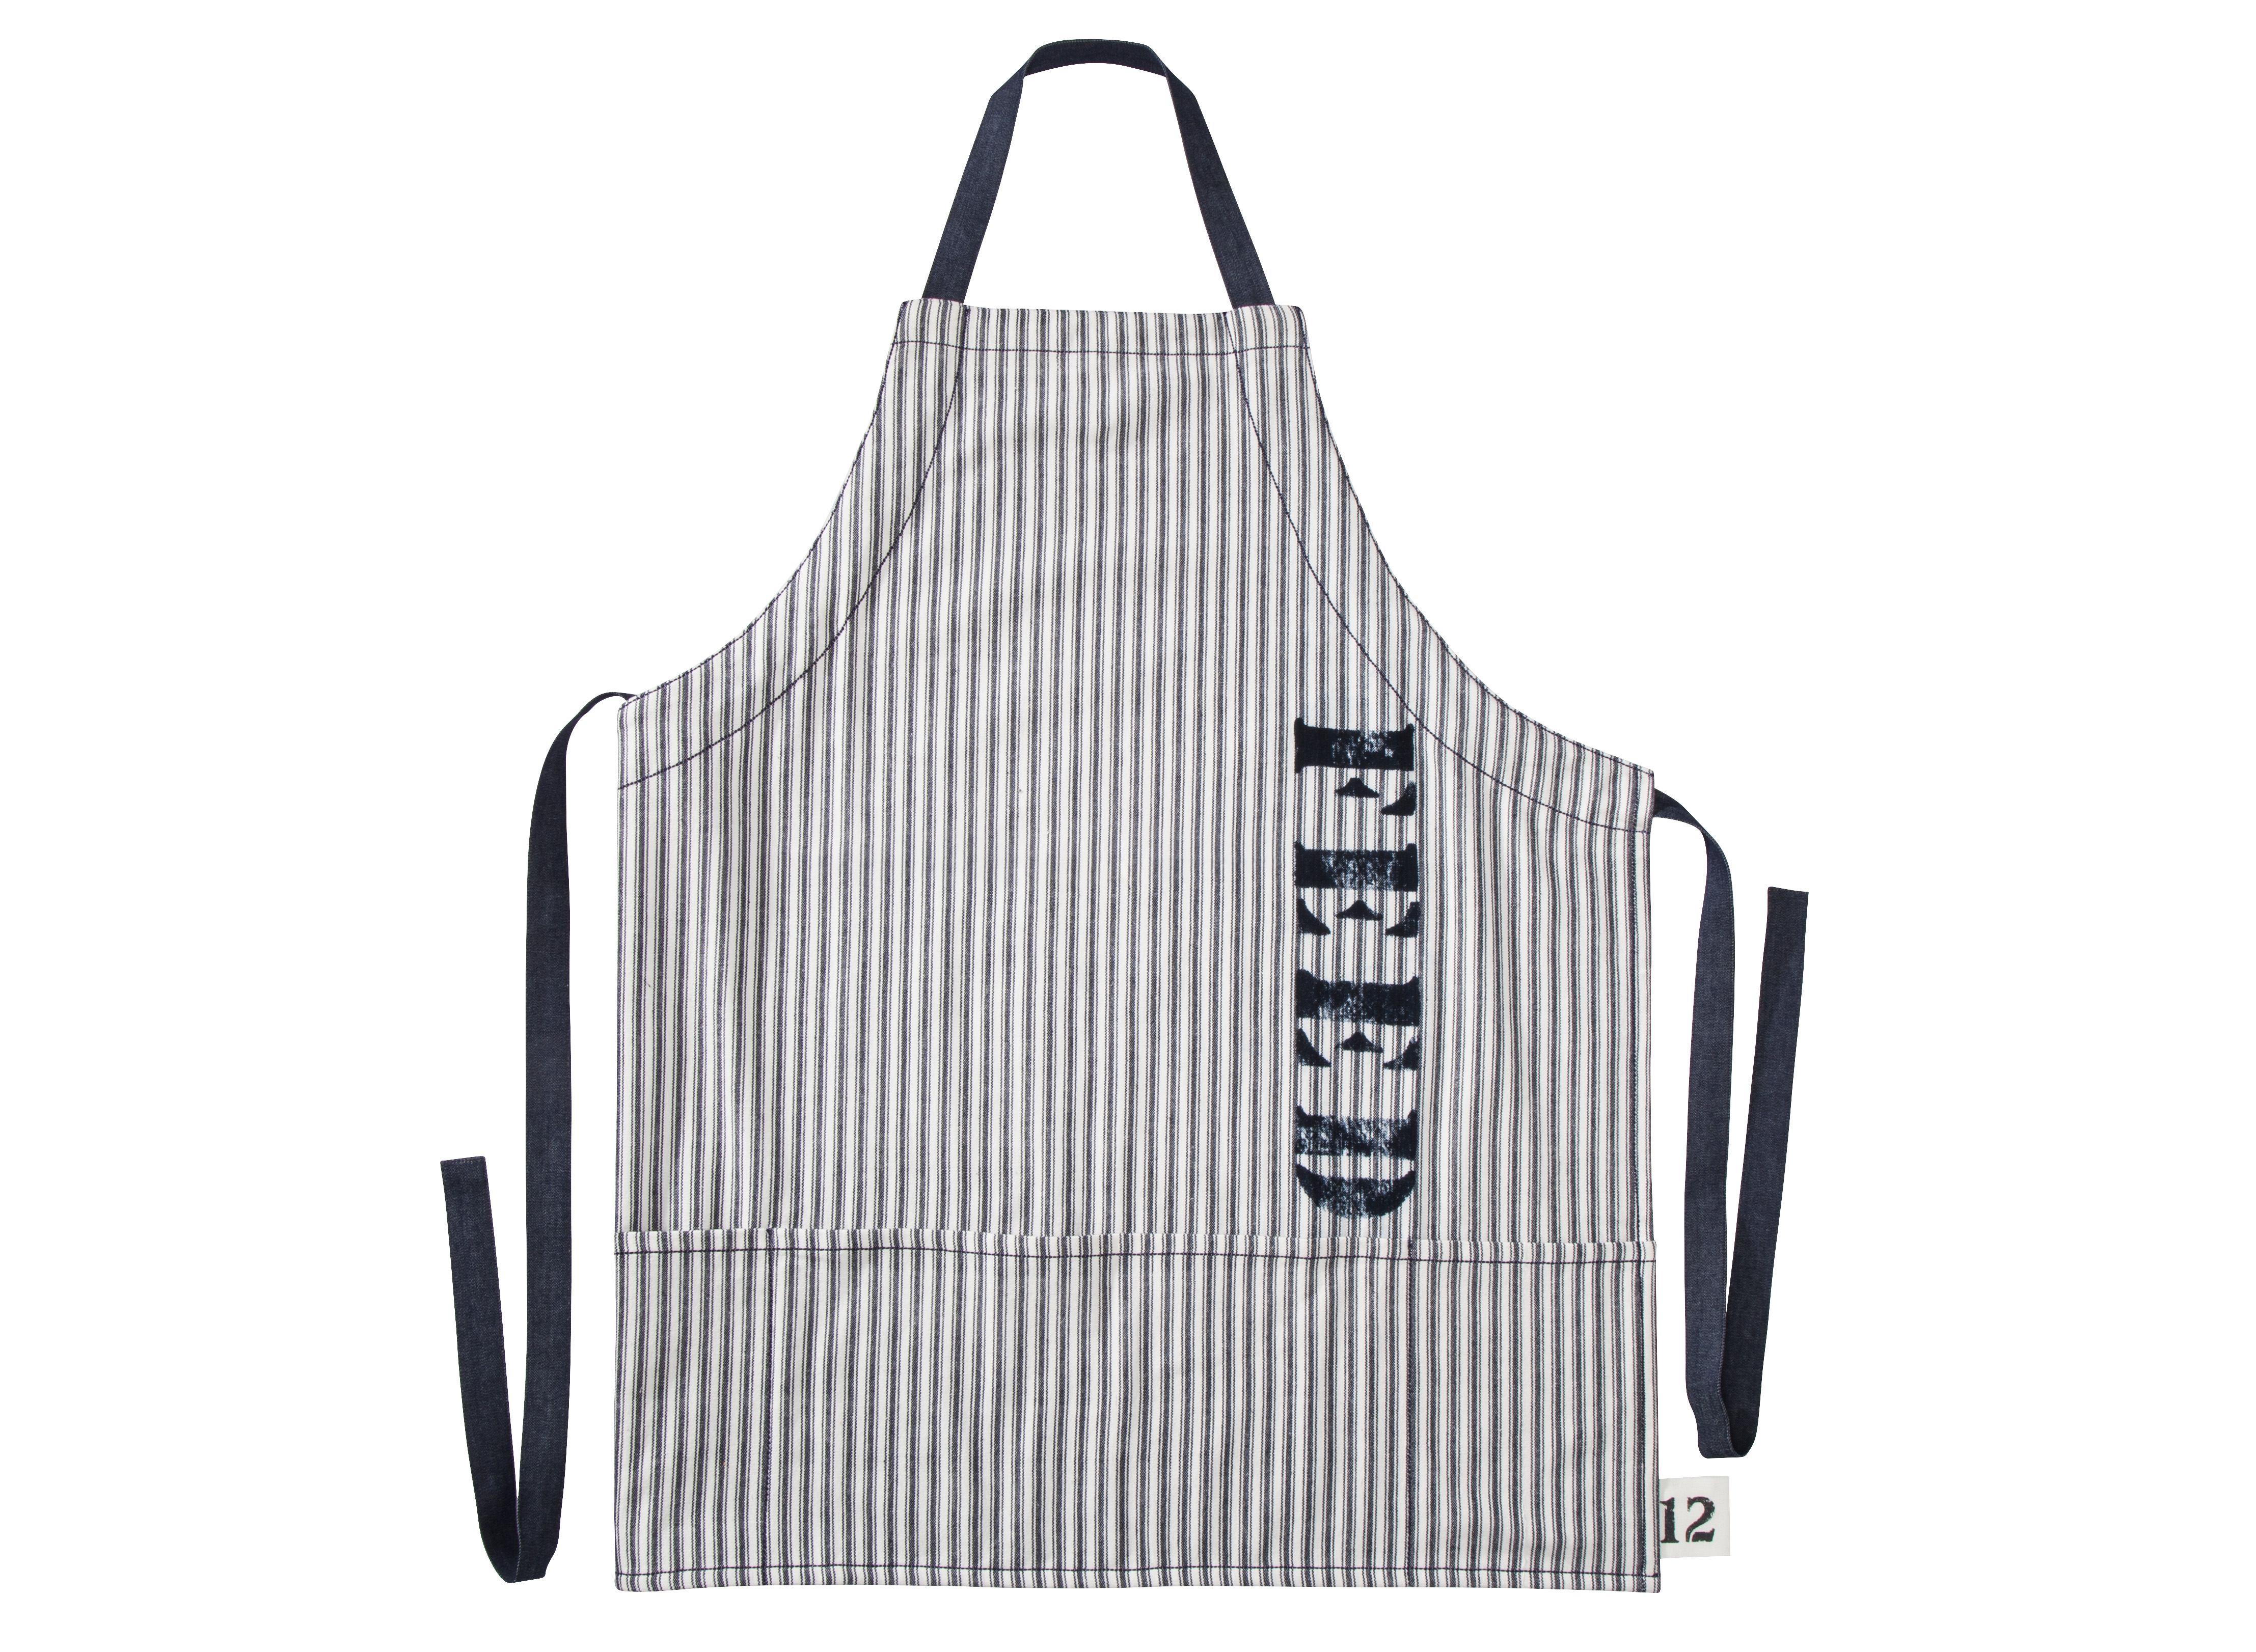 FeedProject Apron